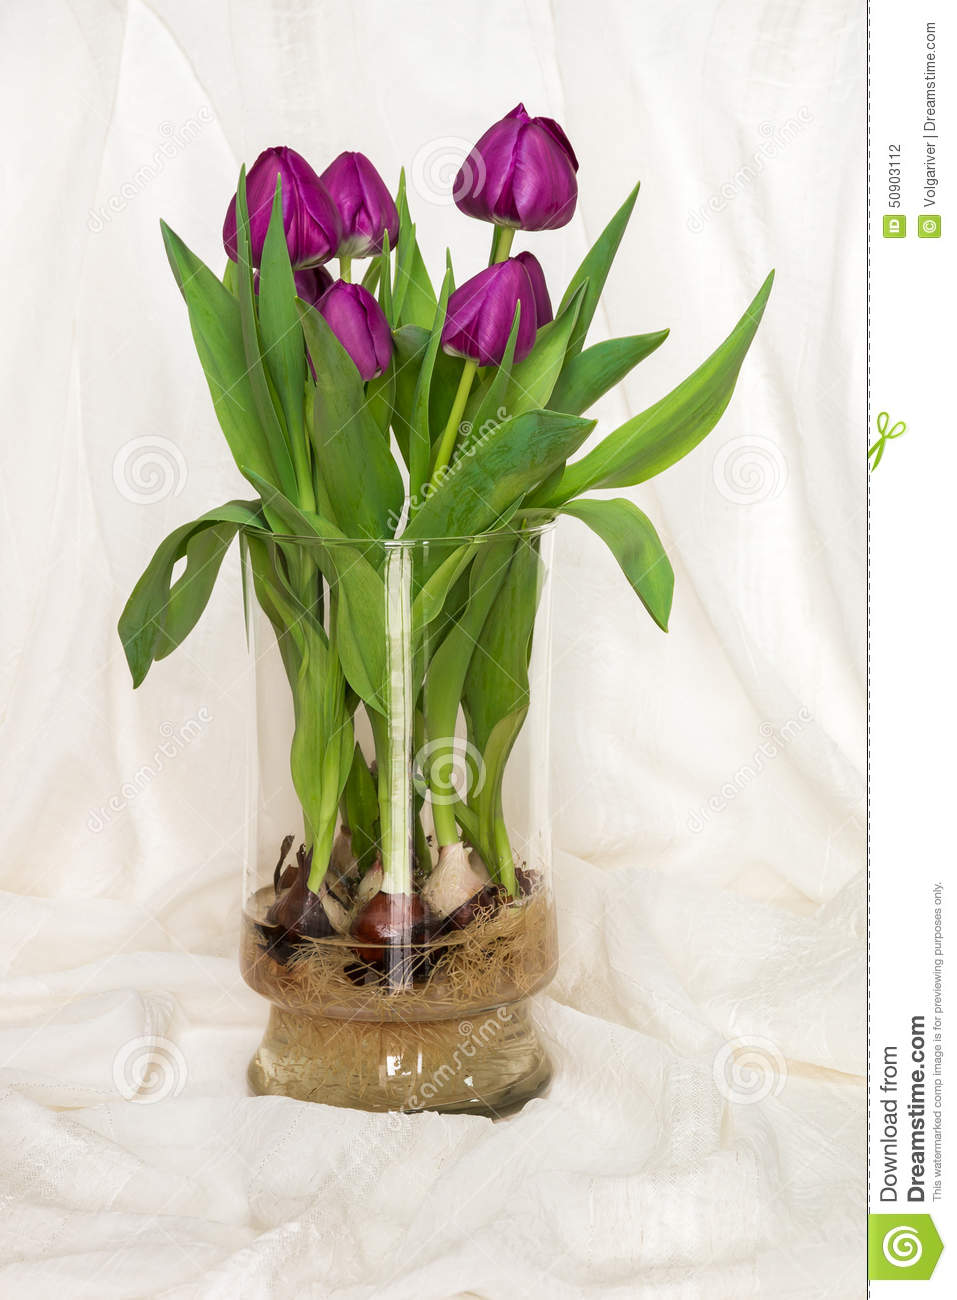 Magenta Tulips Growing In Water In A Glass Vase Bulbs